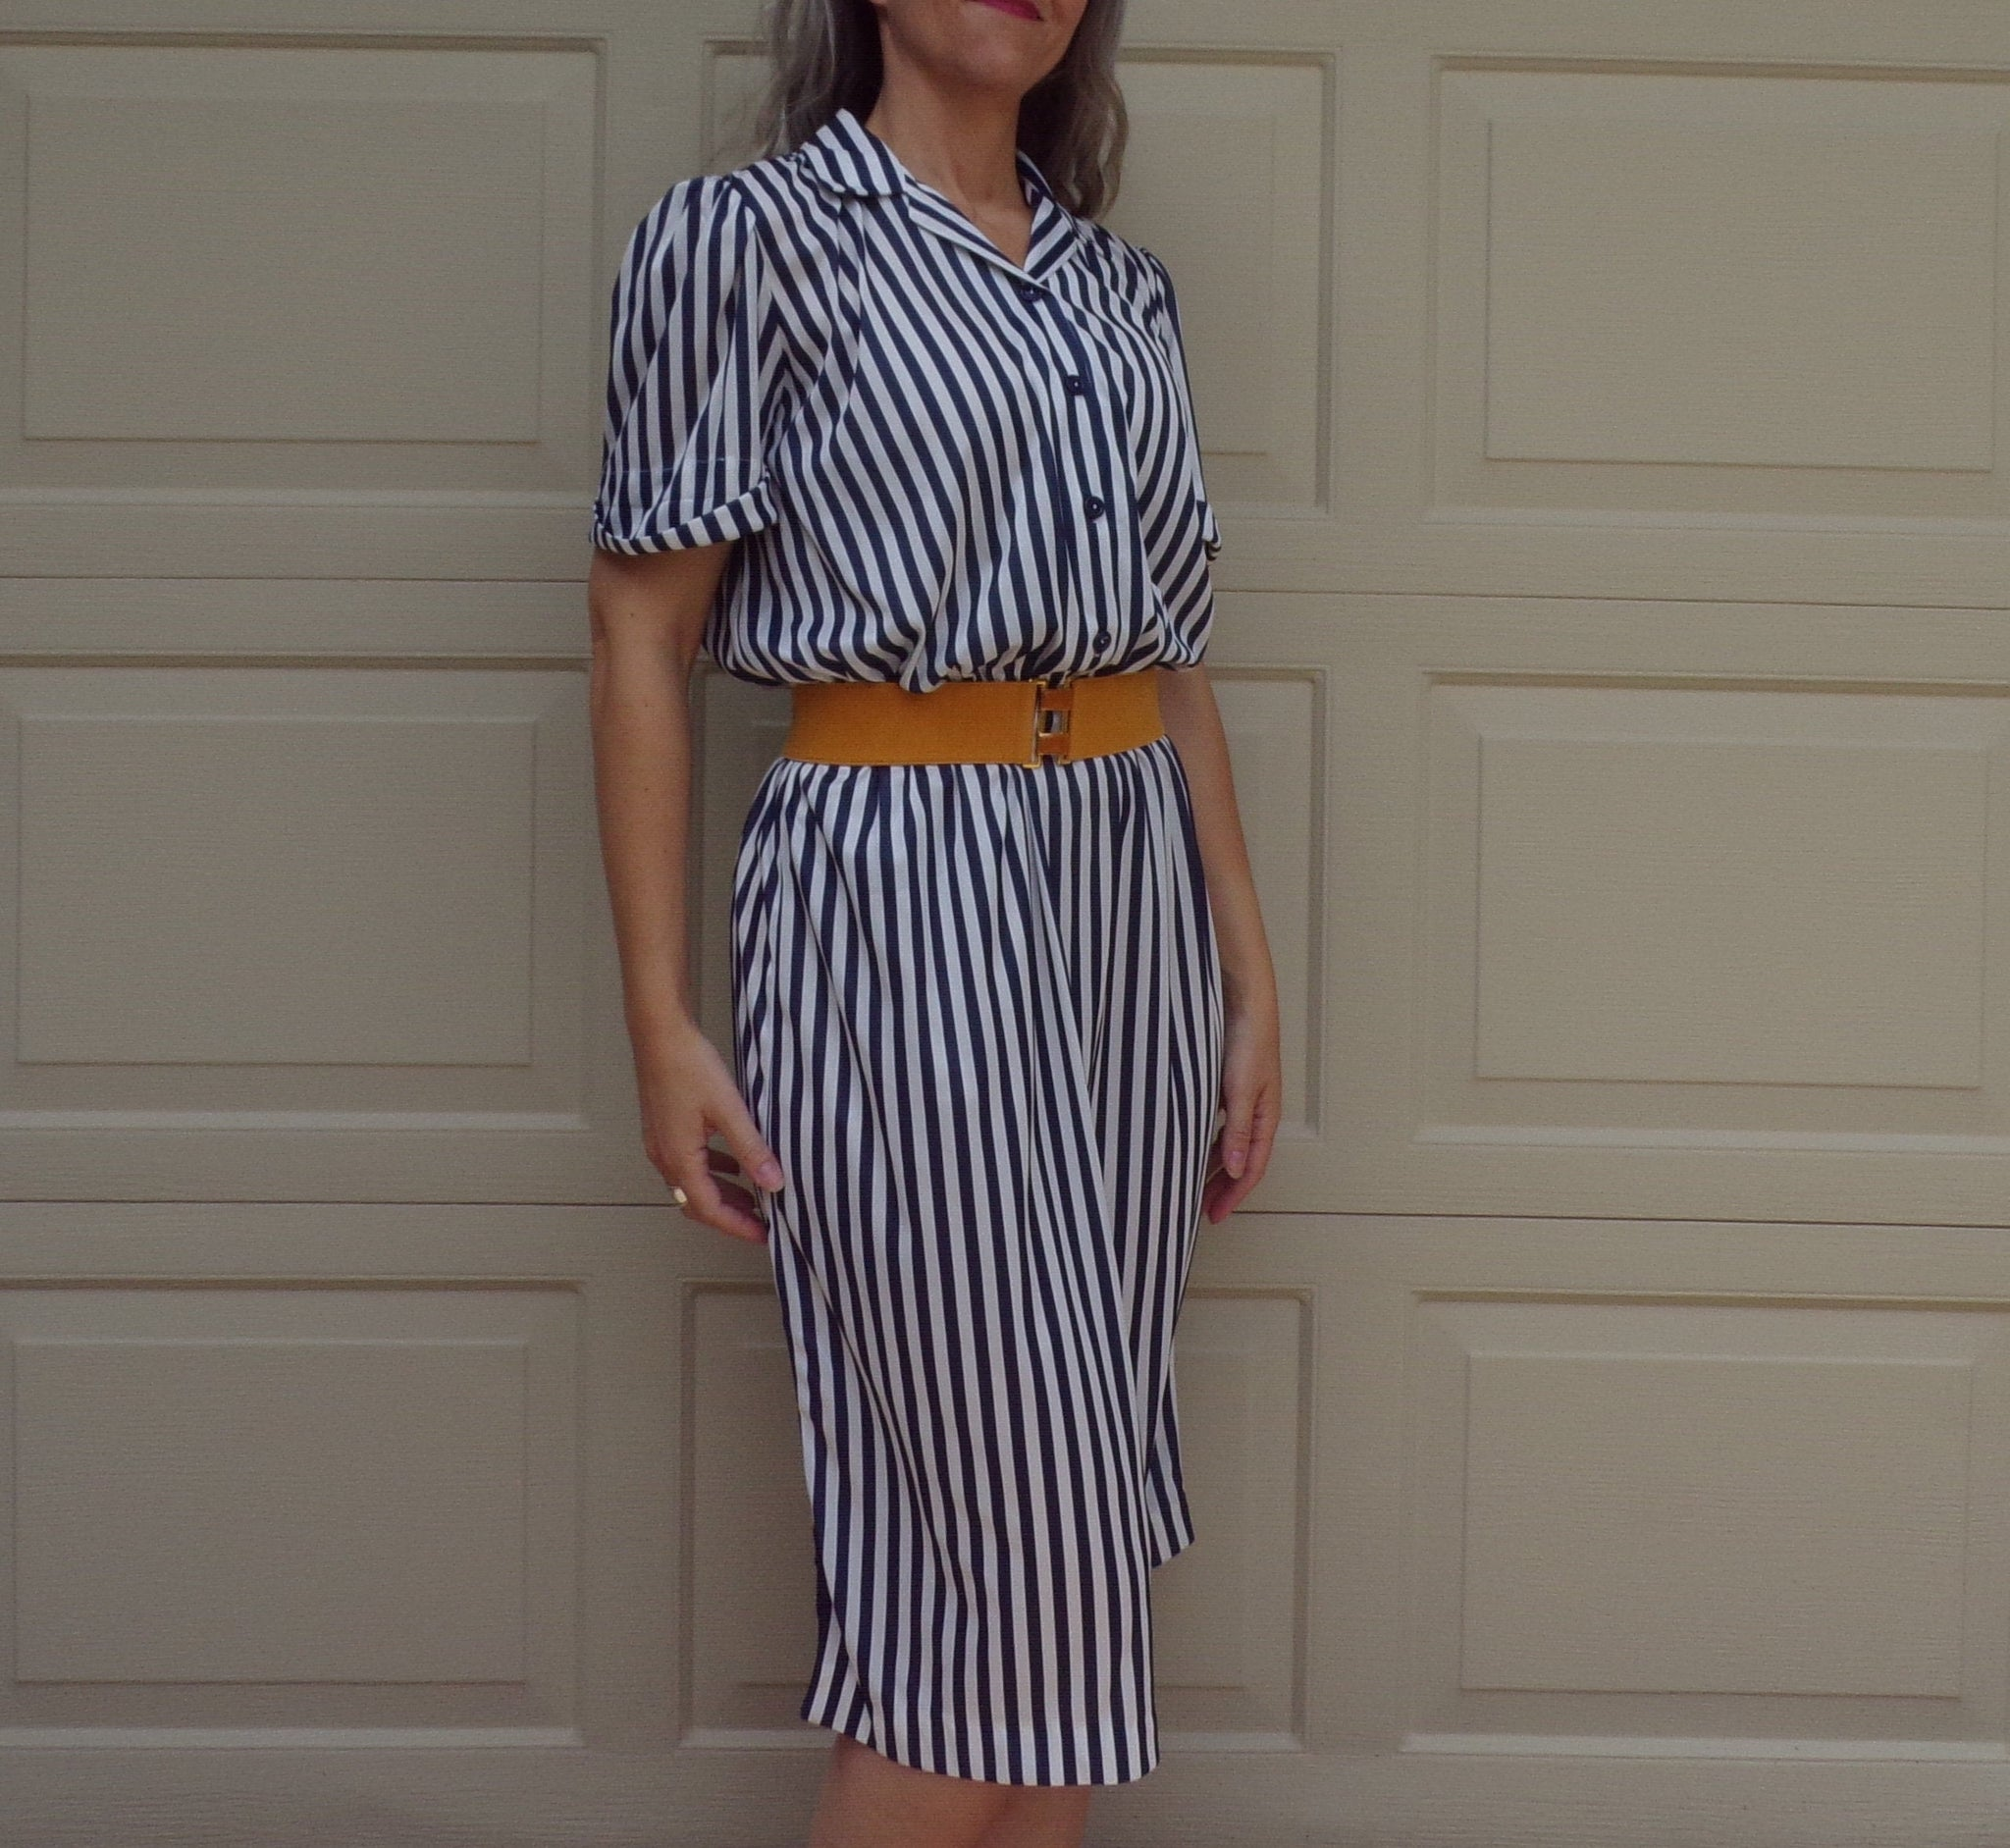 70's 80's STRIPED DAY DRESS navy and white M L (D6)